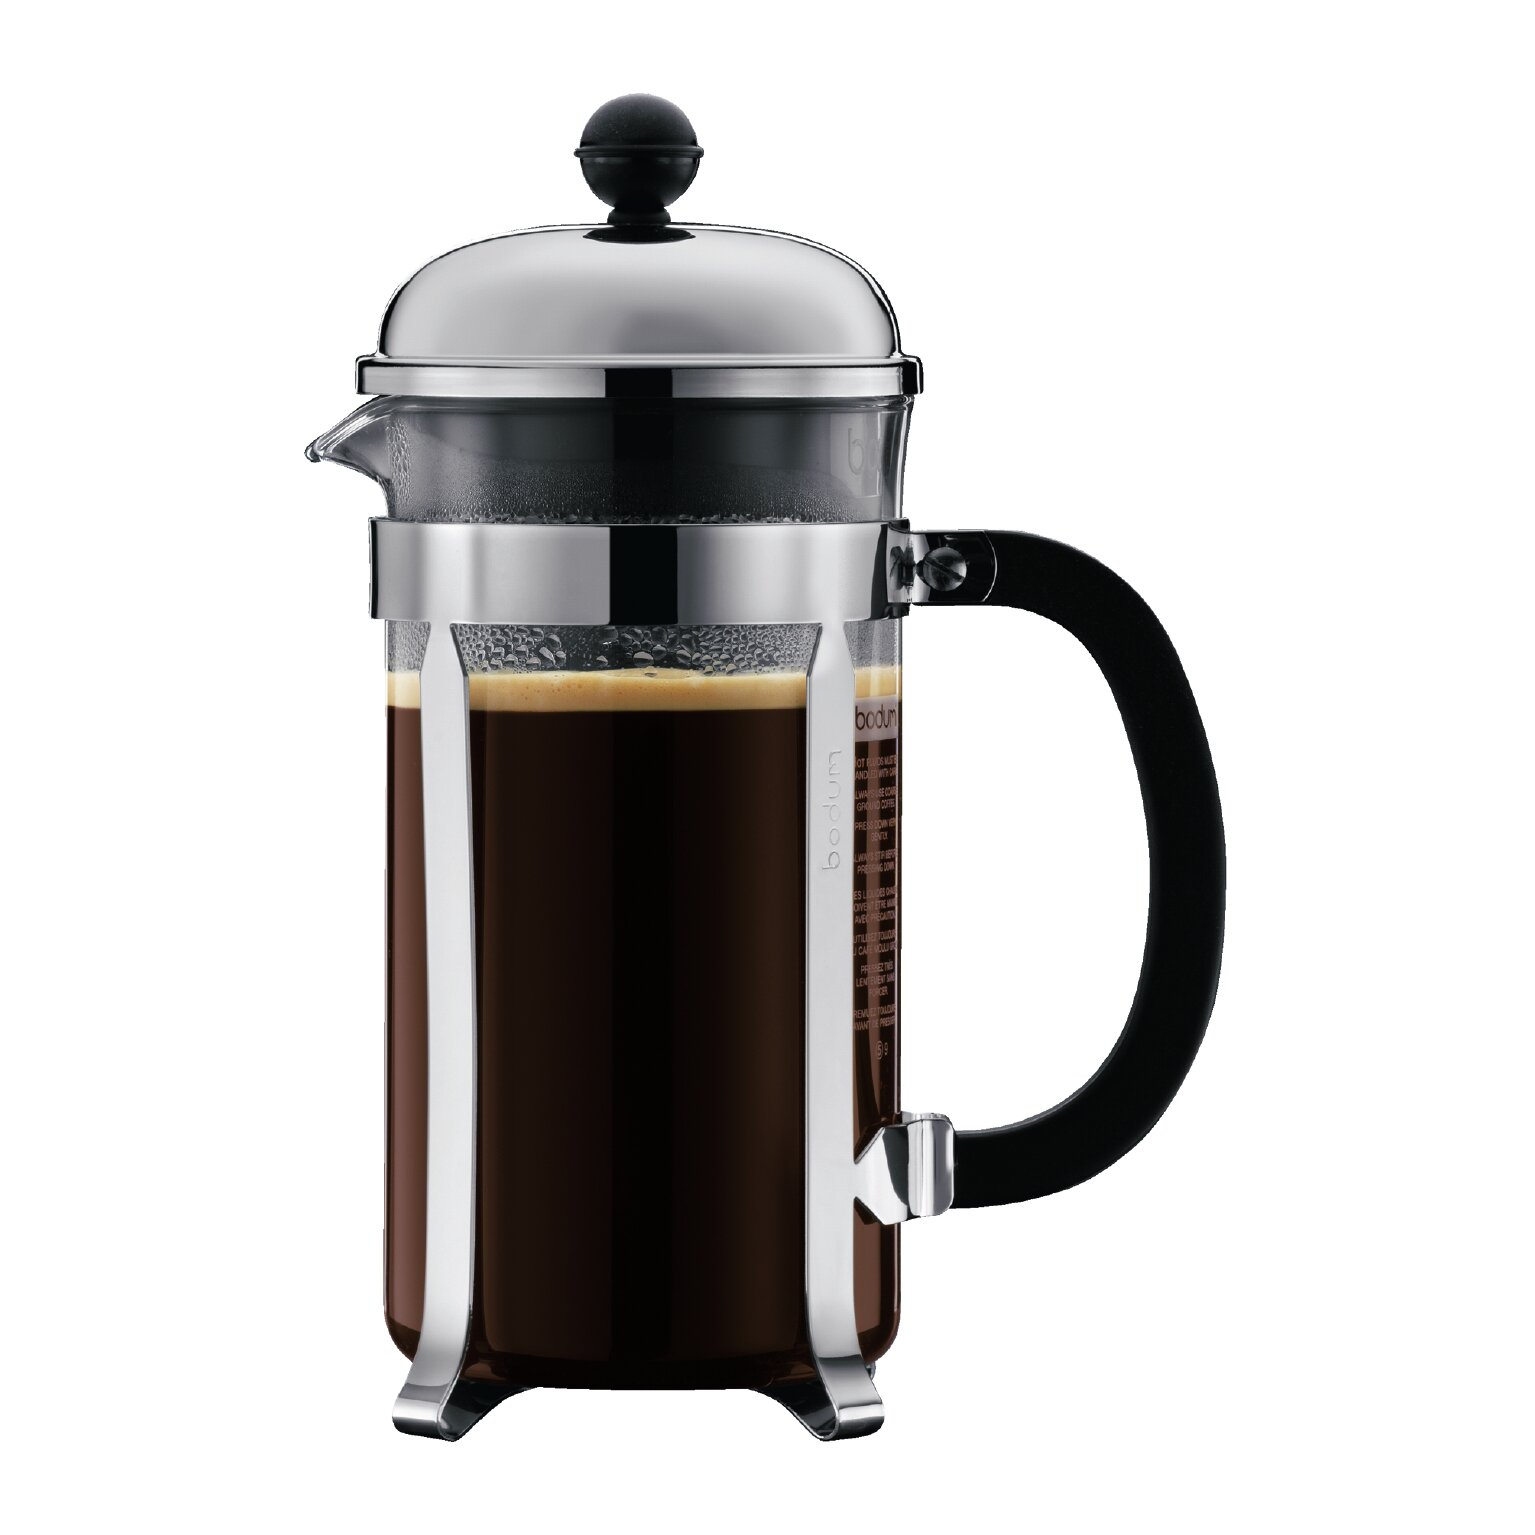 Bed bath beyond french press - Bodum Chambord French Press Coffee Maker Reviews Wayfair